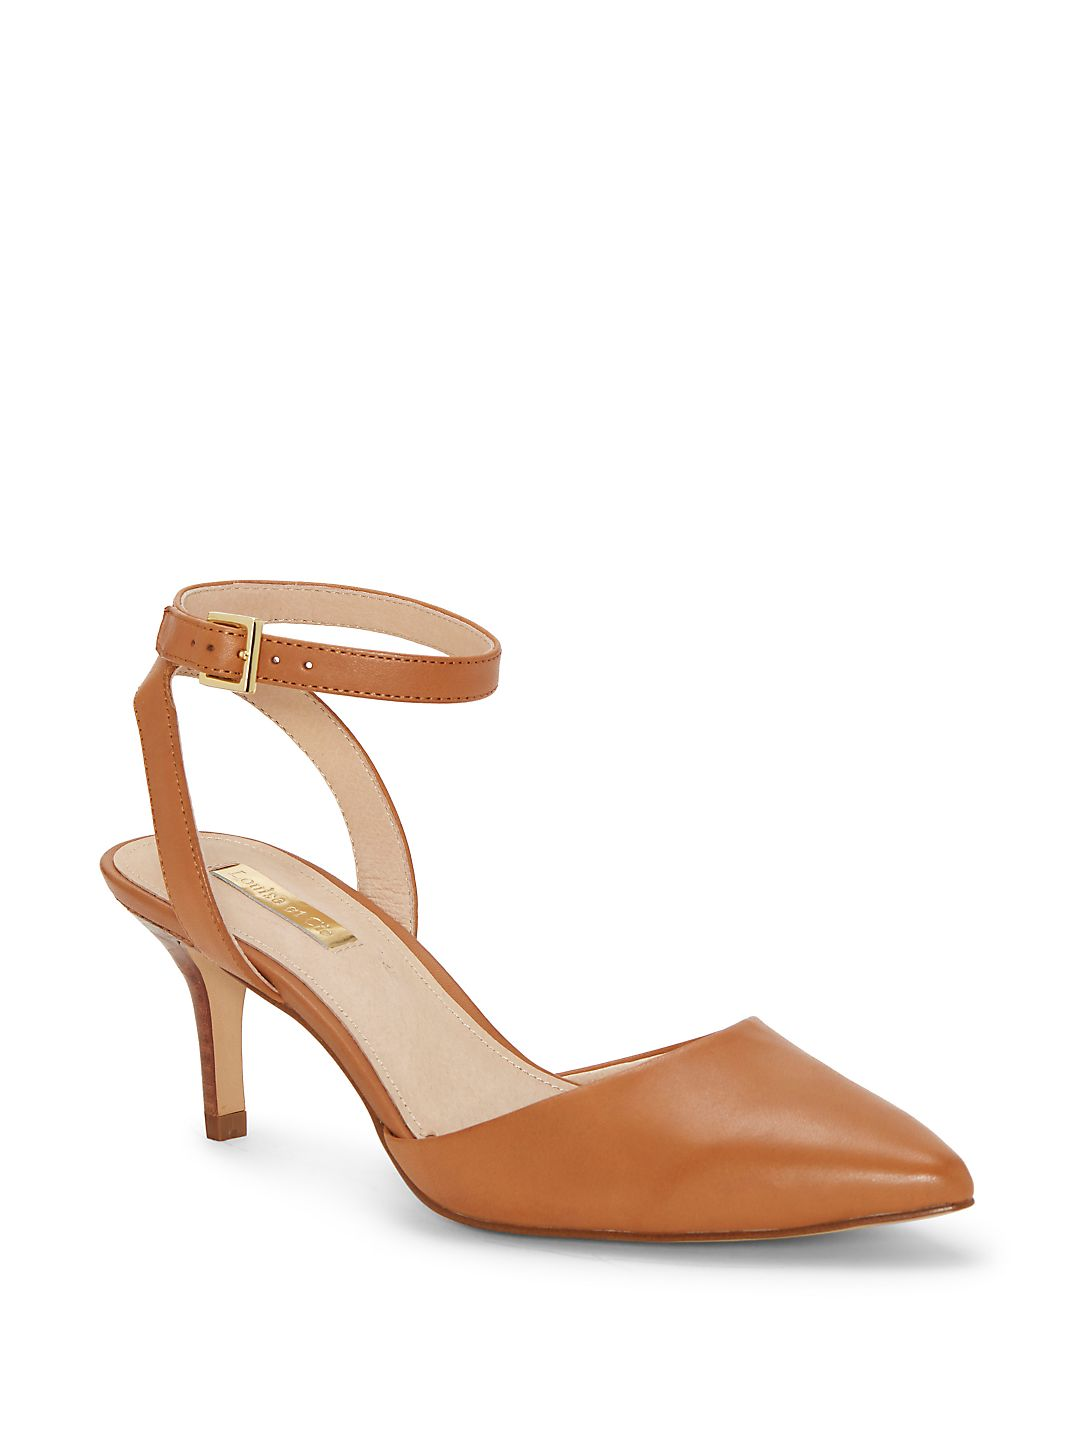 Esperance Ankle-Strap Pumps